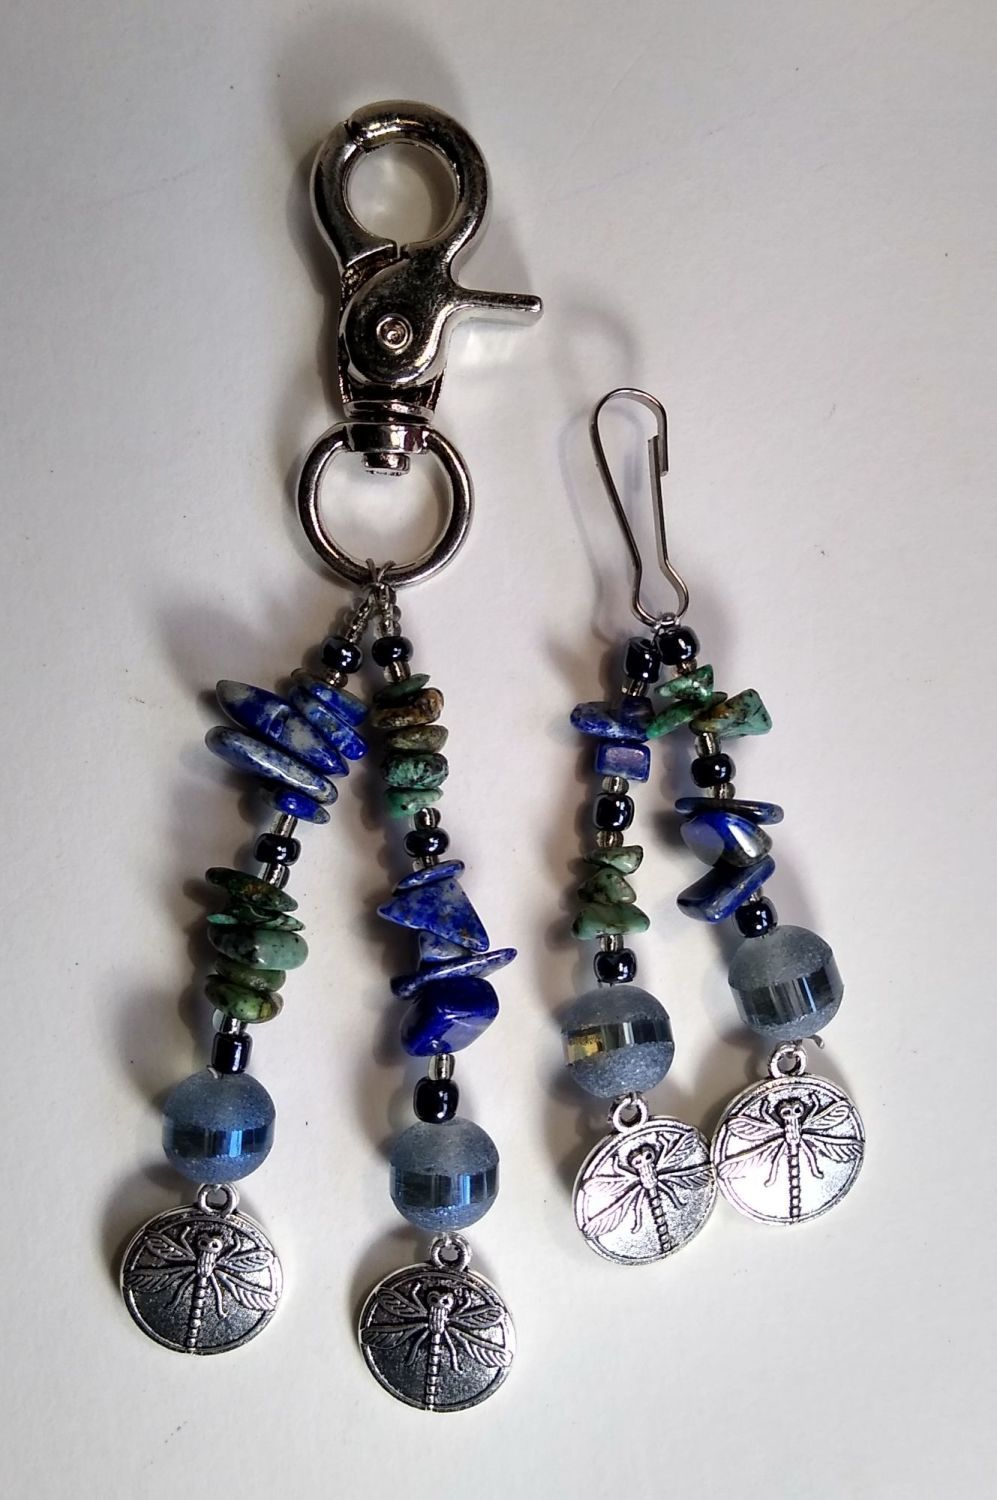 DRAGONFLY HEADCOLLAR AND BRIDLE CHARMS.